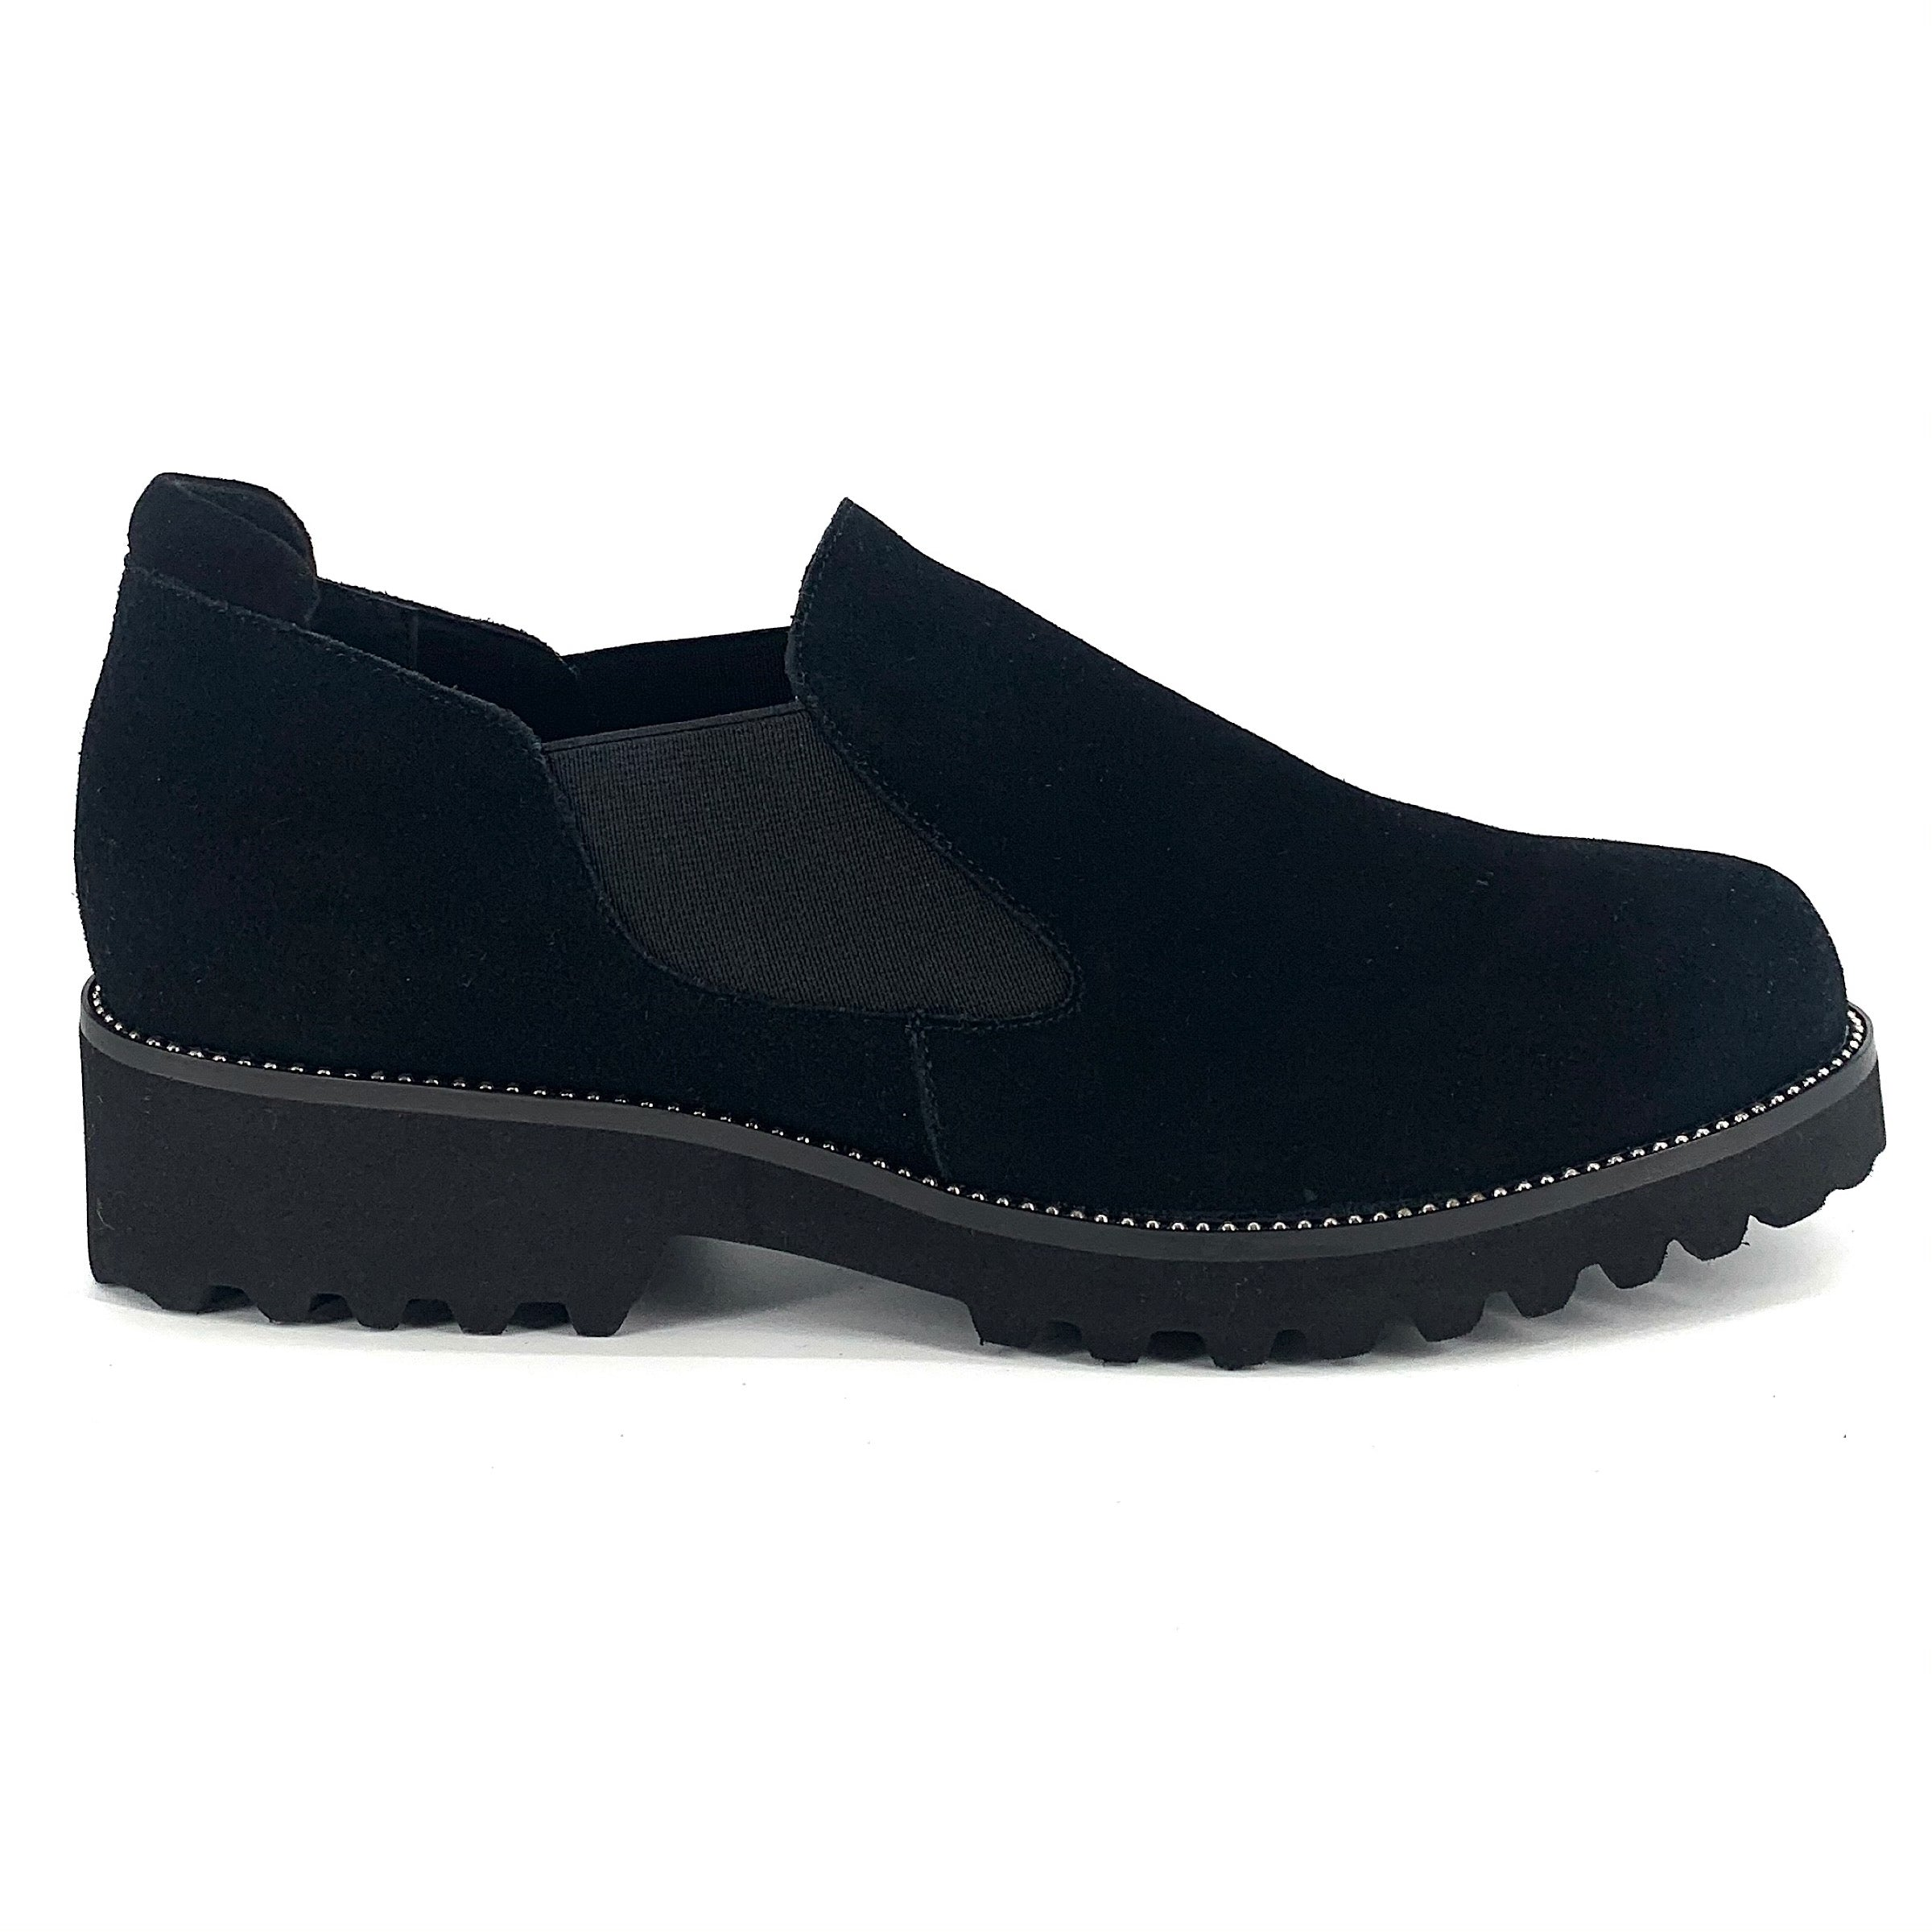 The Weatherproof Slip-On With Ball Chain in Black